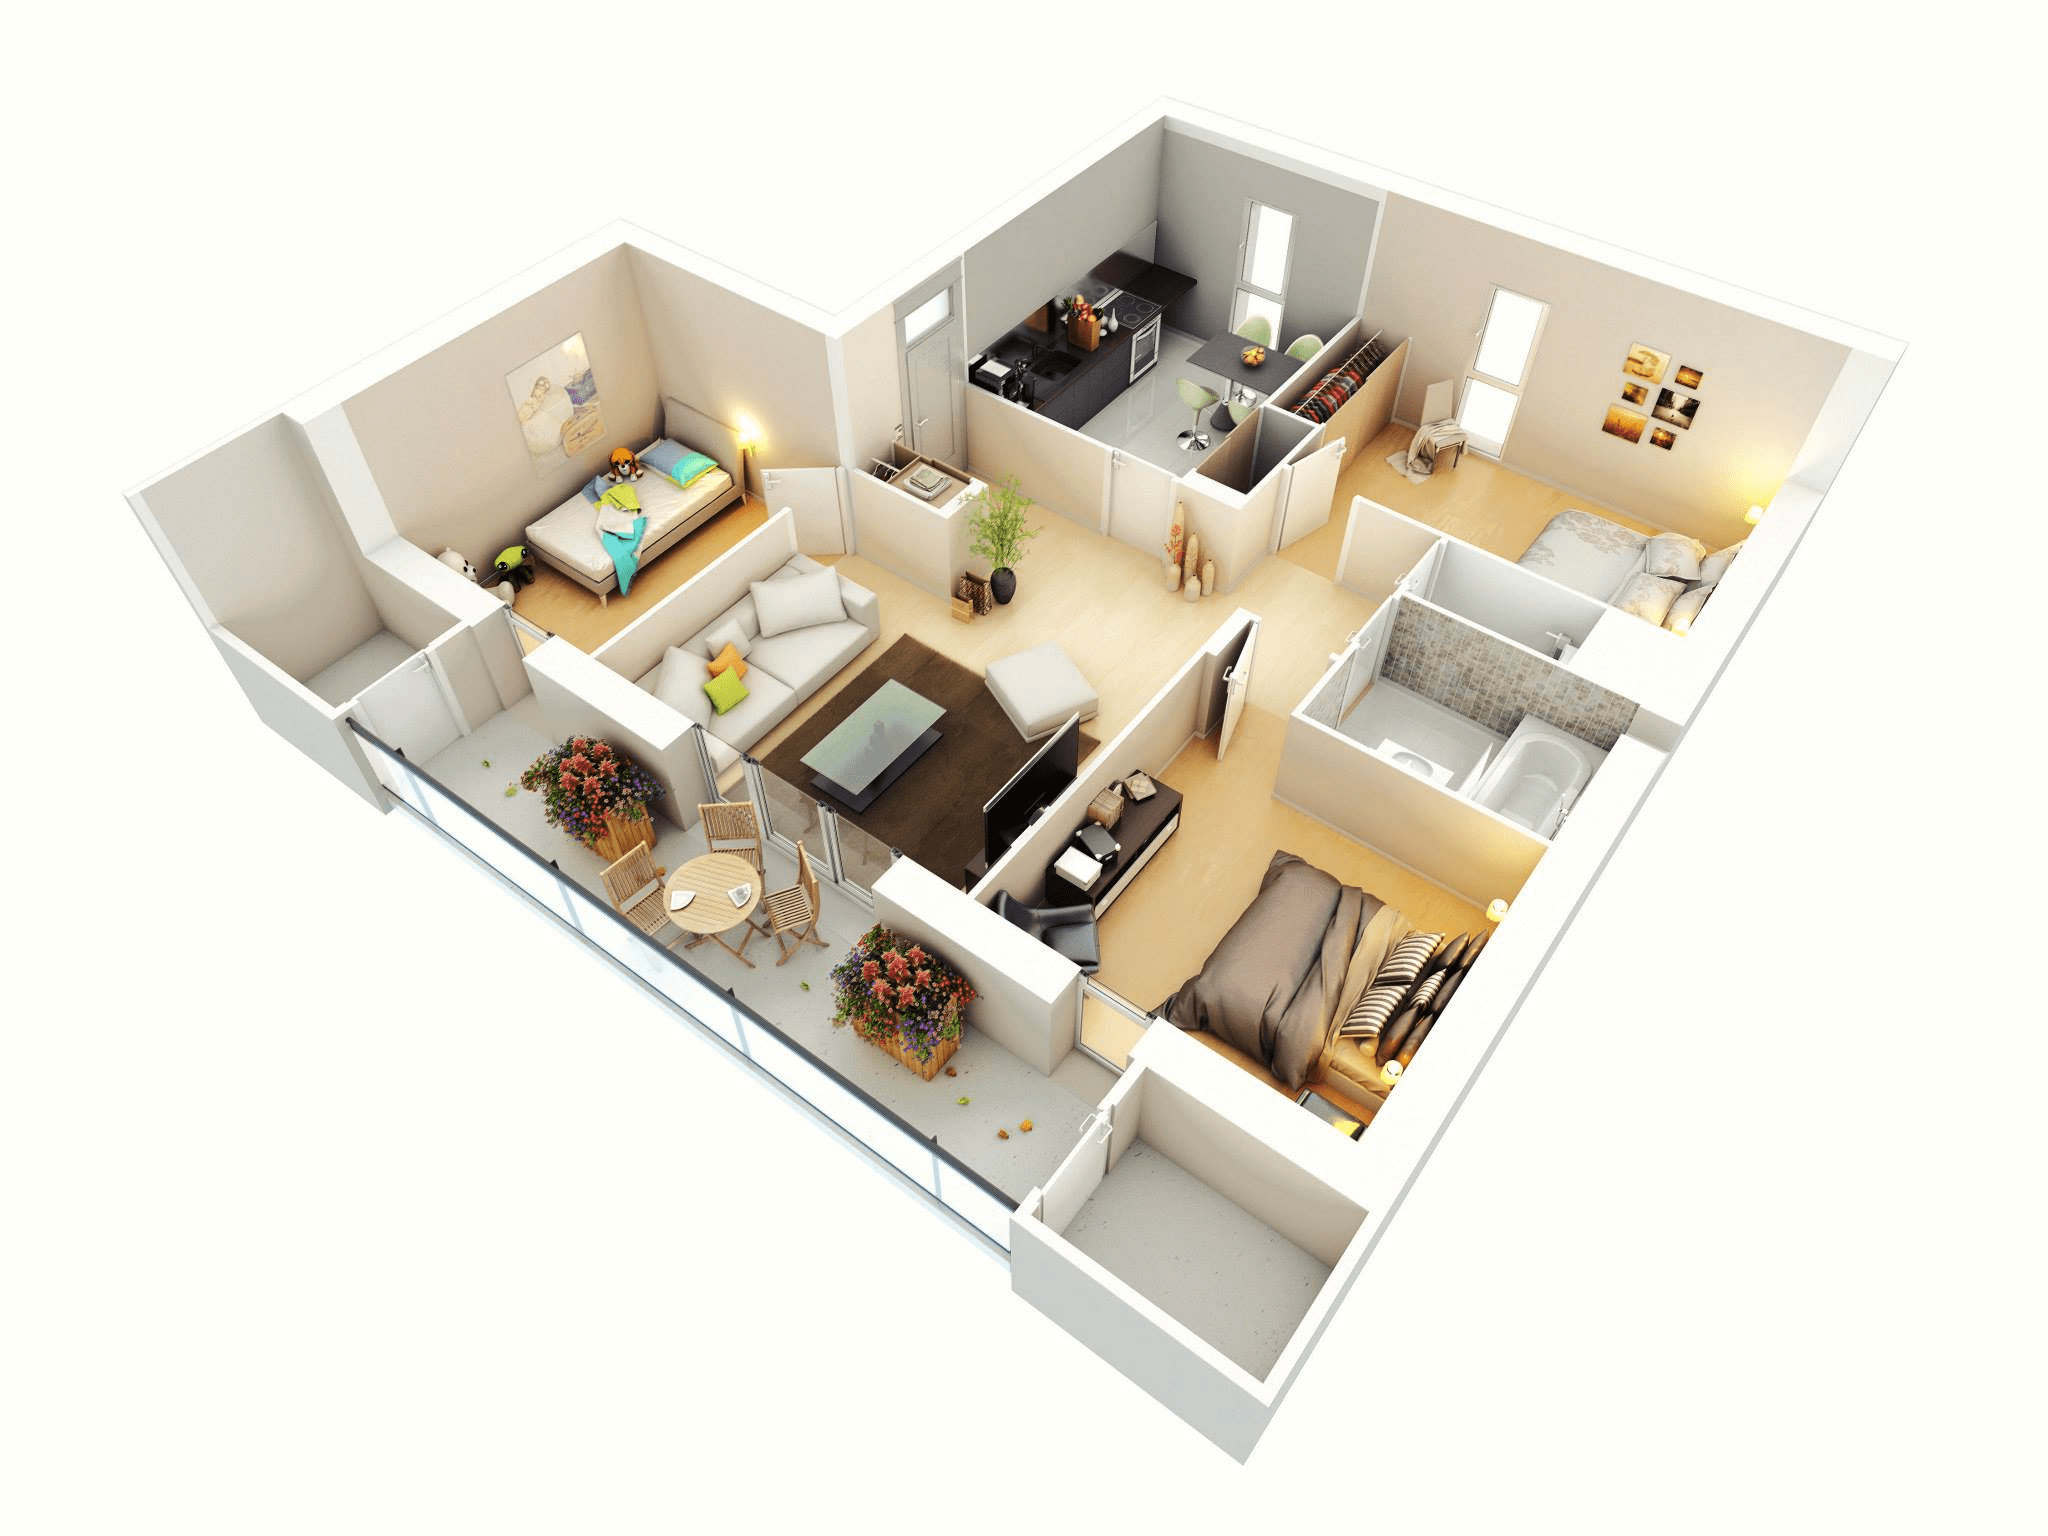 3d three bedroom house layout design plans 23034 for 3 bedroom